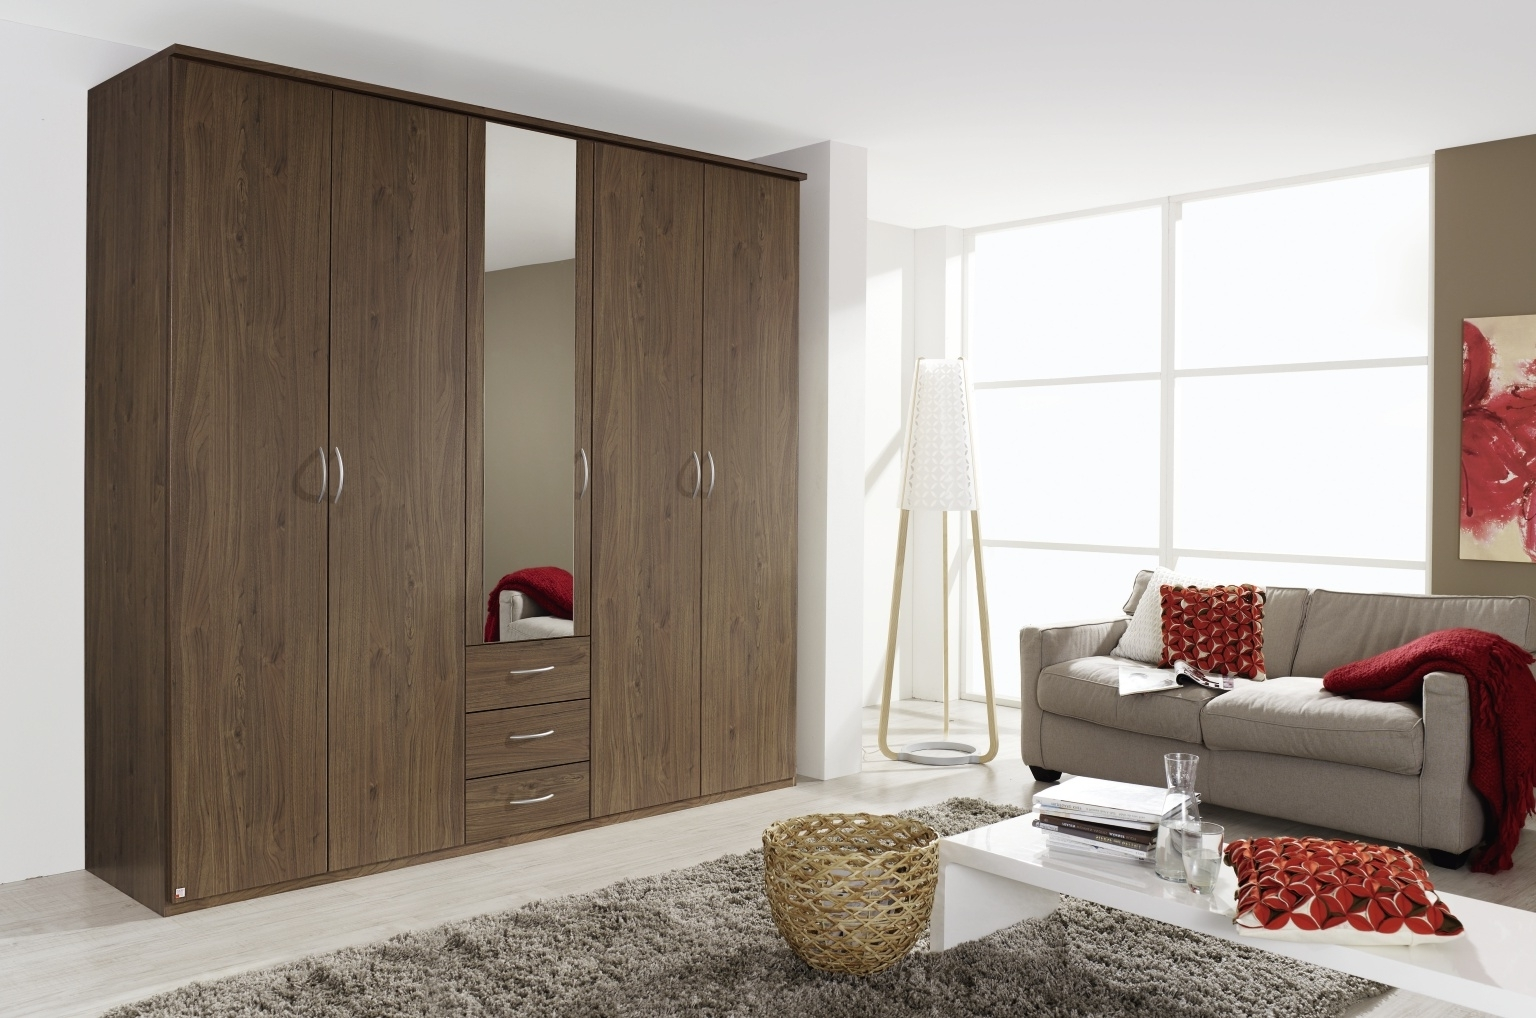 Rauch Kent Wardrobes – Furniture Brothers With Regard To Trendy Rauch Wardrobes (View 5 of 15)